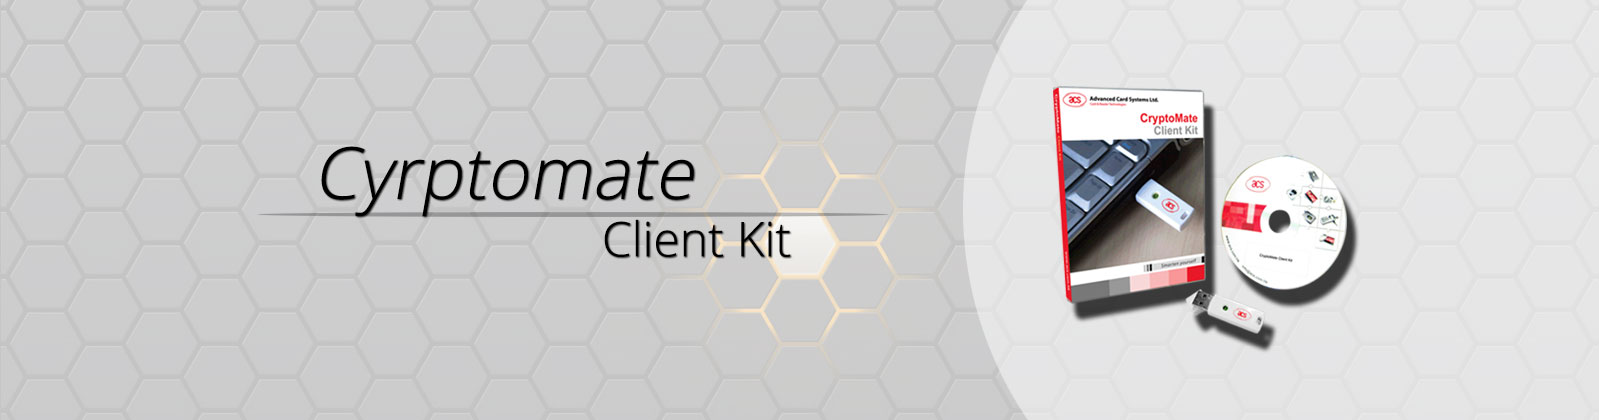 CryptoMate Client Kit